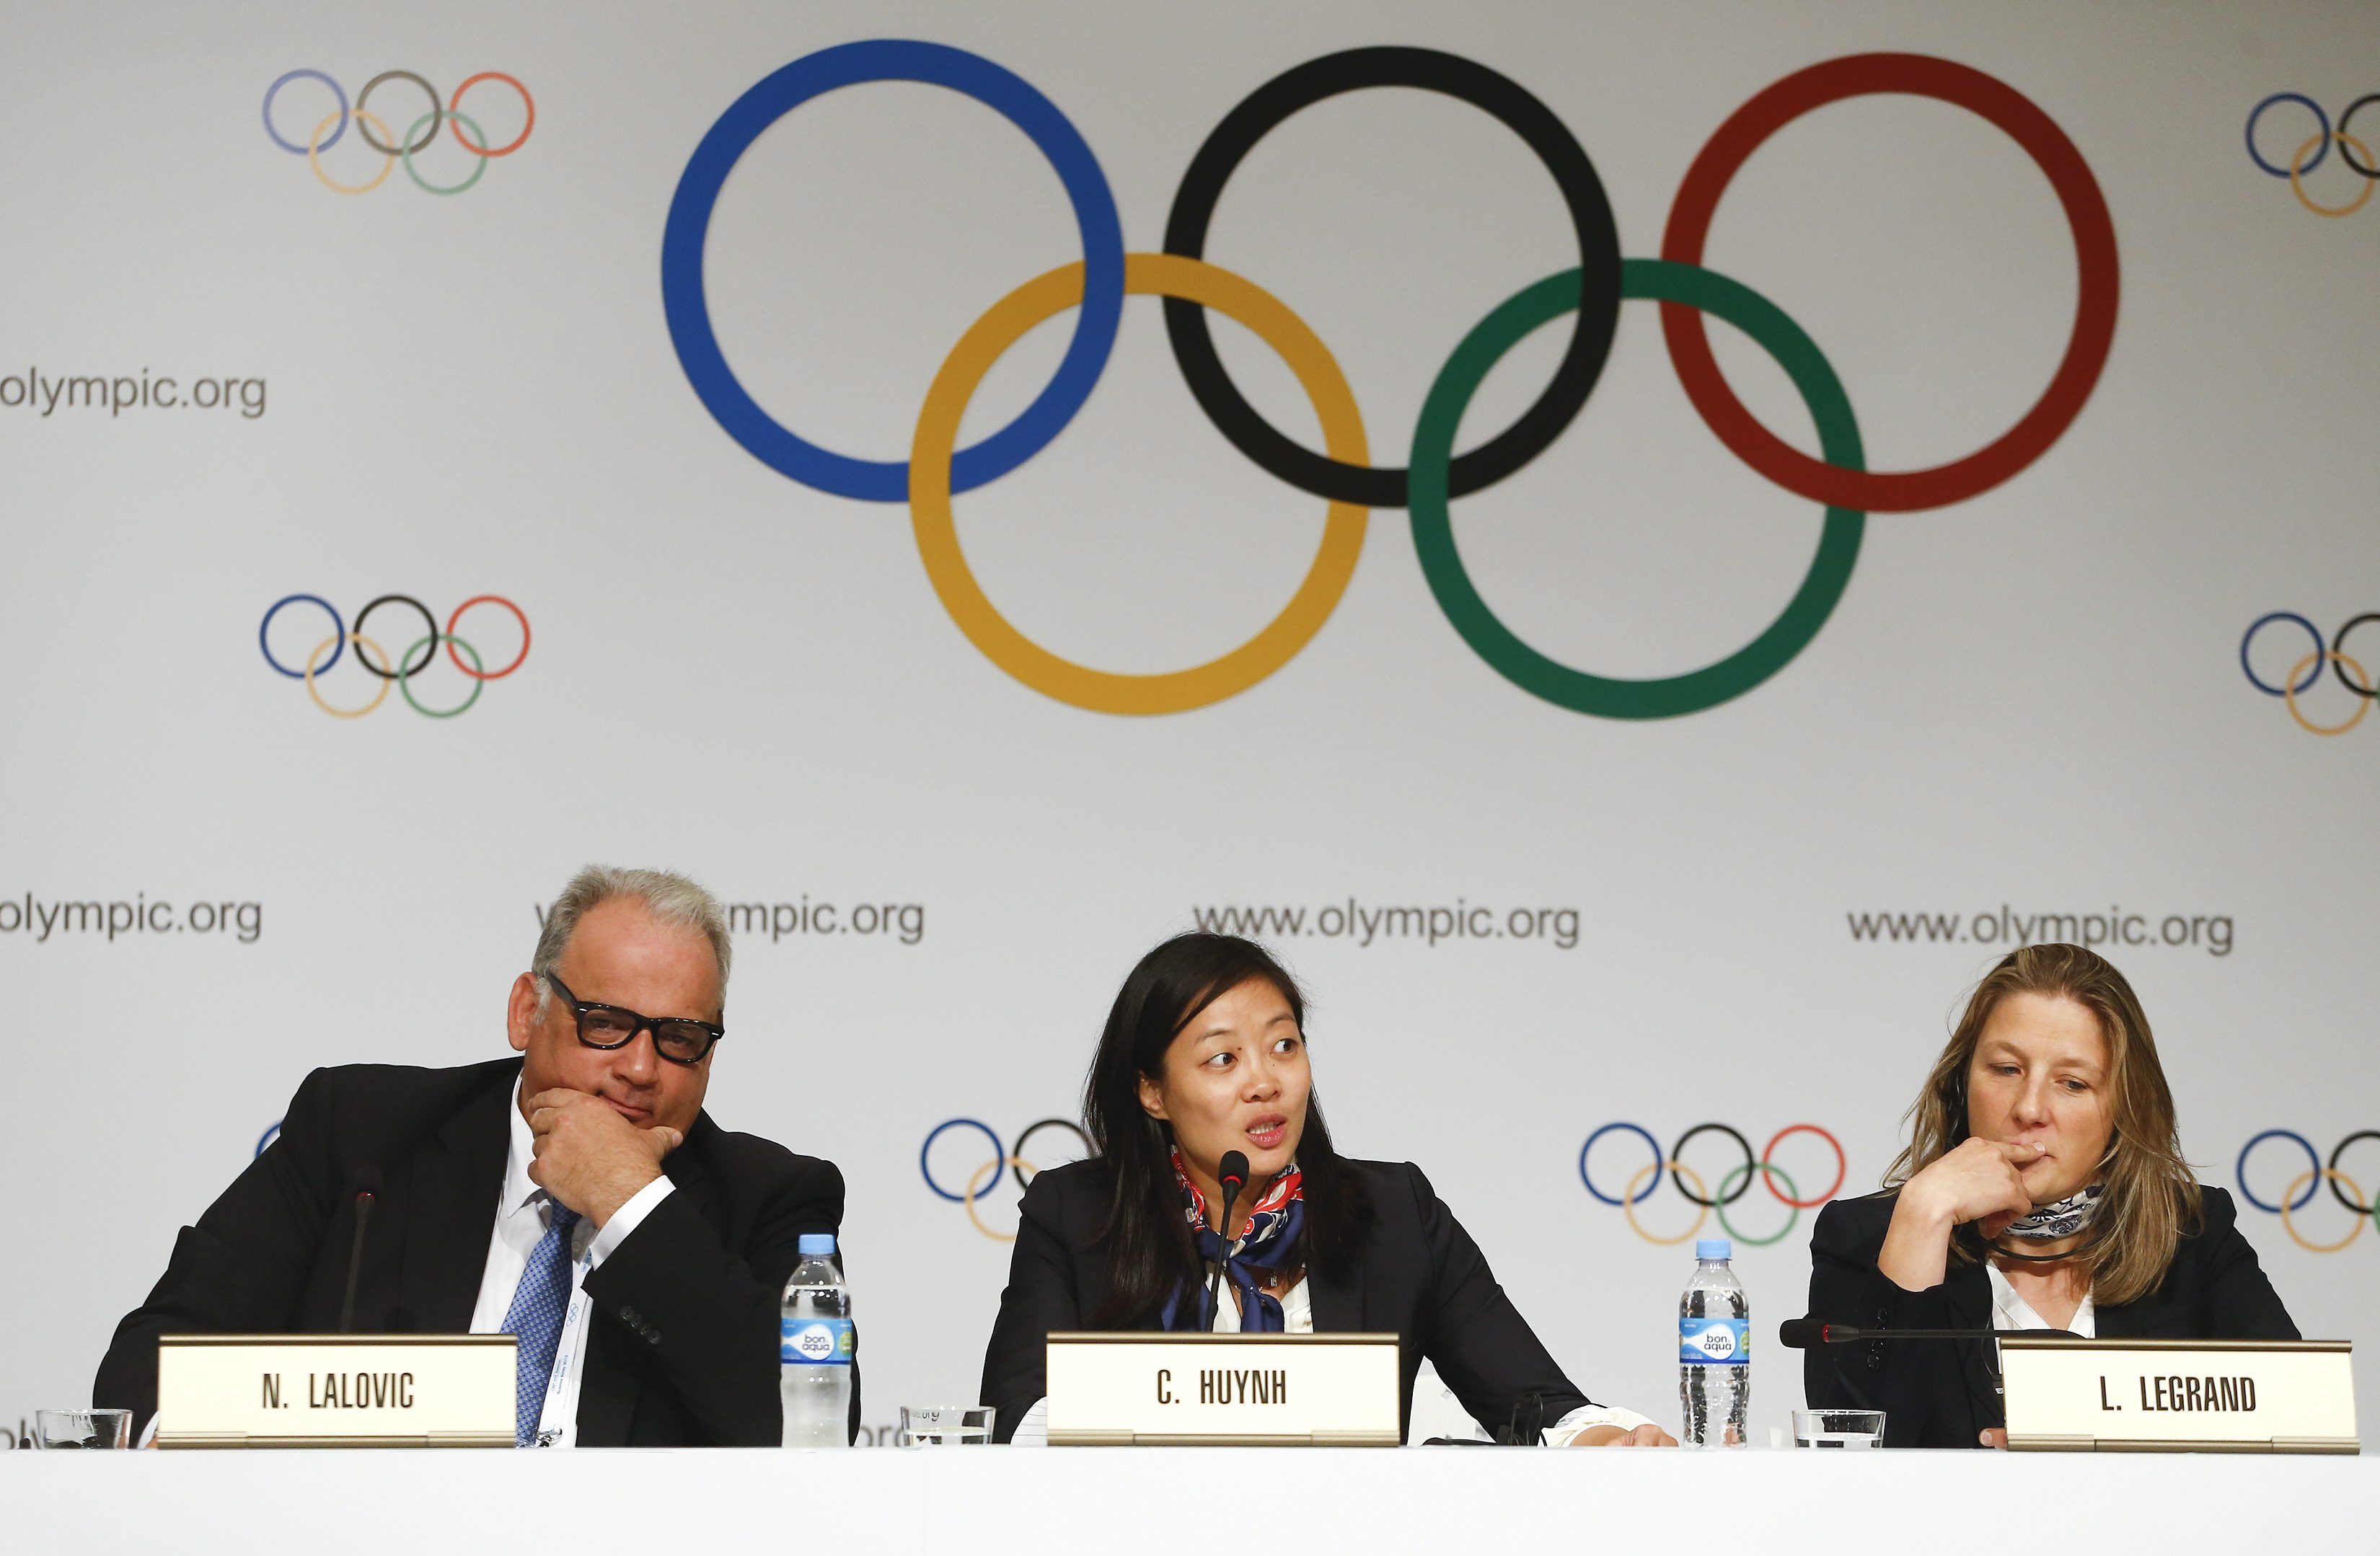 Canadian freestyle wrestler and olympic gold medalist Carol Huynh, center, speaks during a news conference in Buenos Aires, Argentina, Friday, Sept. 6, 2013. During the Sept. 4-10 International Olympic Committee (IOC) Executive Board meetings in Buenos Aires, members will vote on including one additional sport to the program of the 2020 and 2024 Games. Wrestling is up against squash and a combined baseball-softball bid. Huynh is flanked by Nenad Lalovic, head of the International Federation of Associated Wrestling Styles (FILA), left, and Lise Legrand, vice president of the French Wrestling Federation. (AP Photo/Victor R. Caivano)